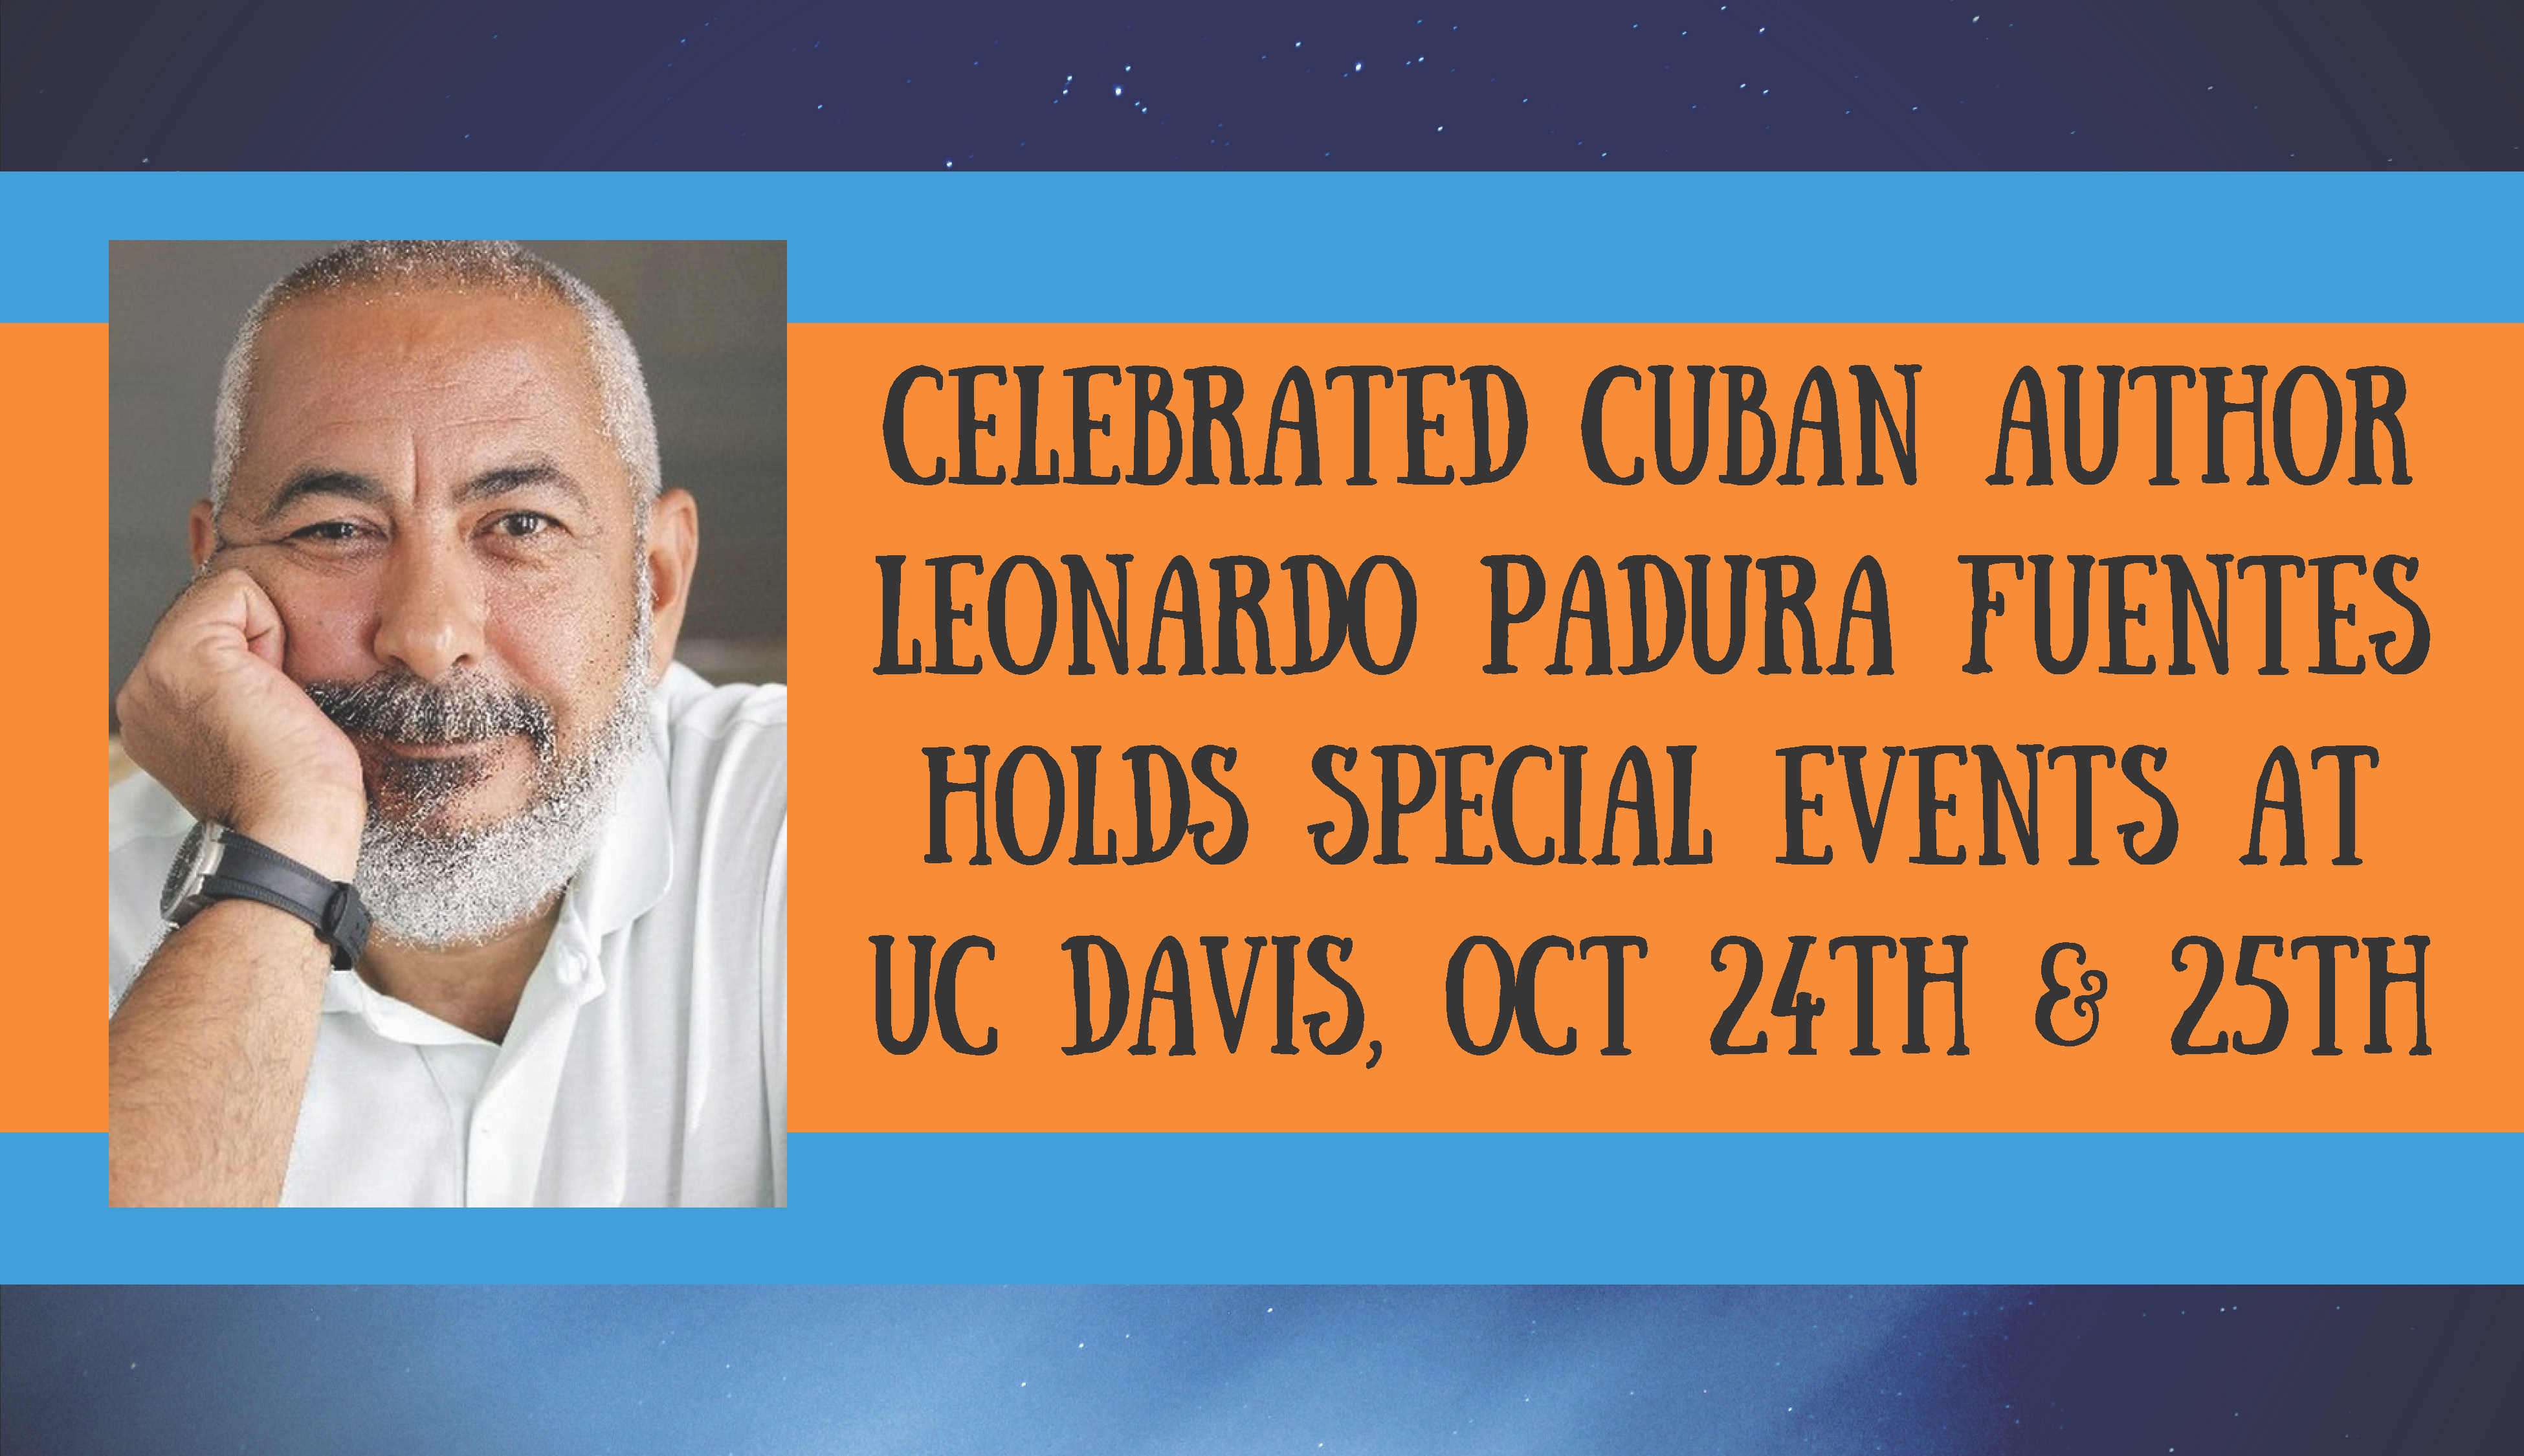 Celebrated Cuban Author Leonardo Padura Fuentes Holds Special Events at UC Davis, Oct. 24th and 25th